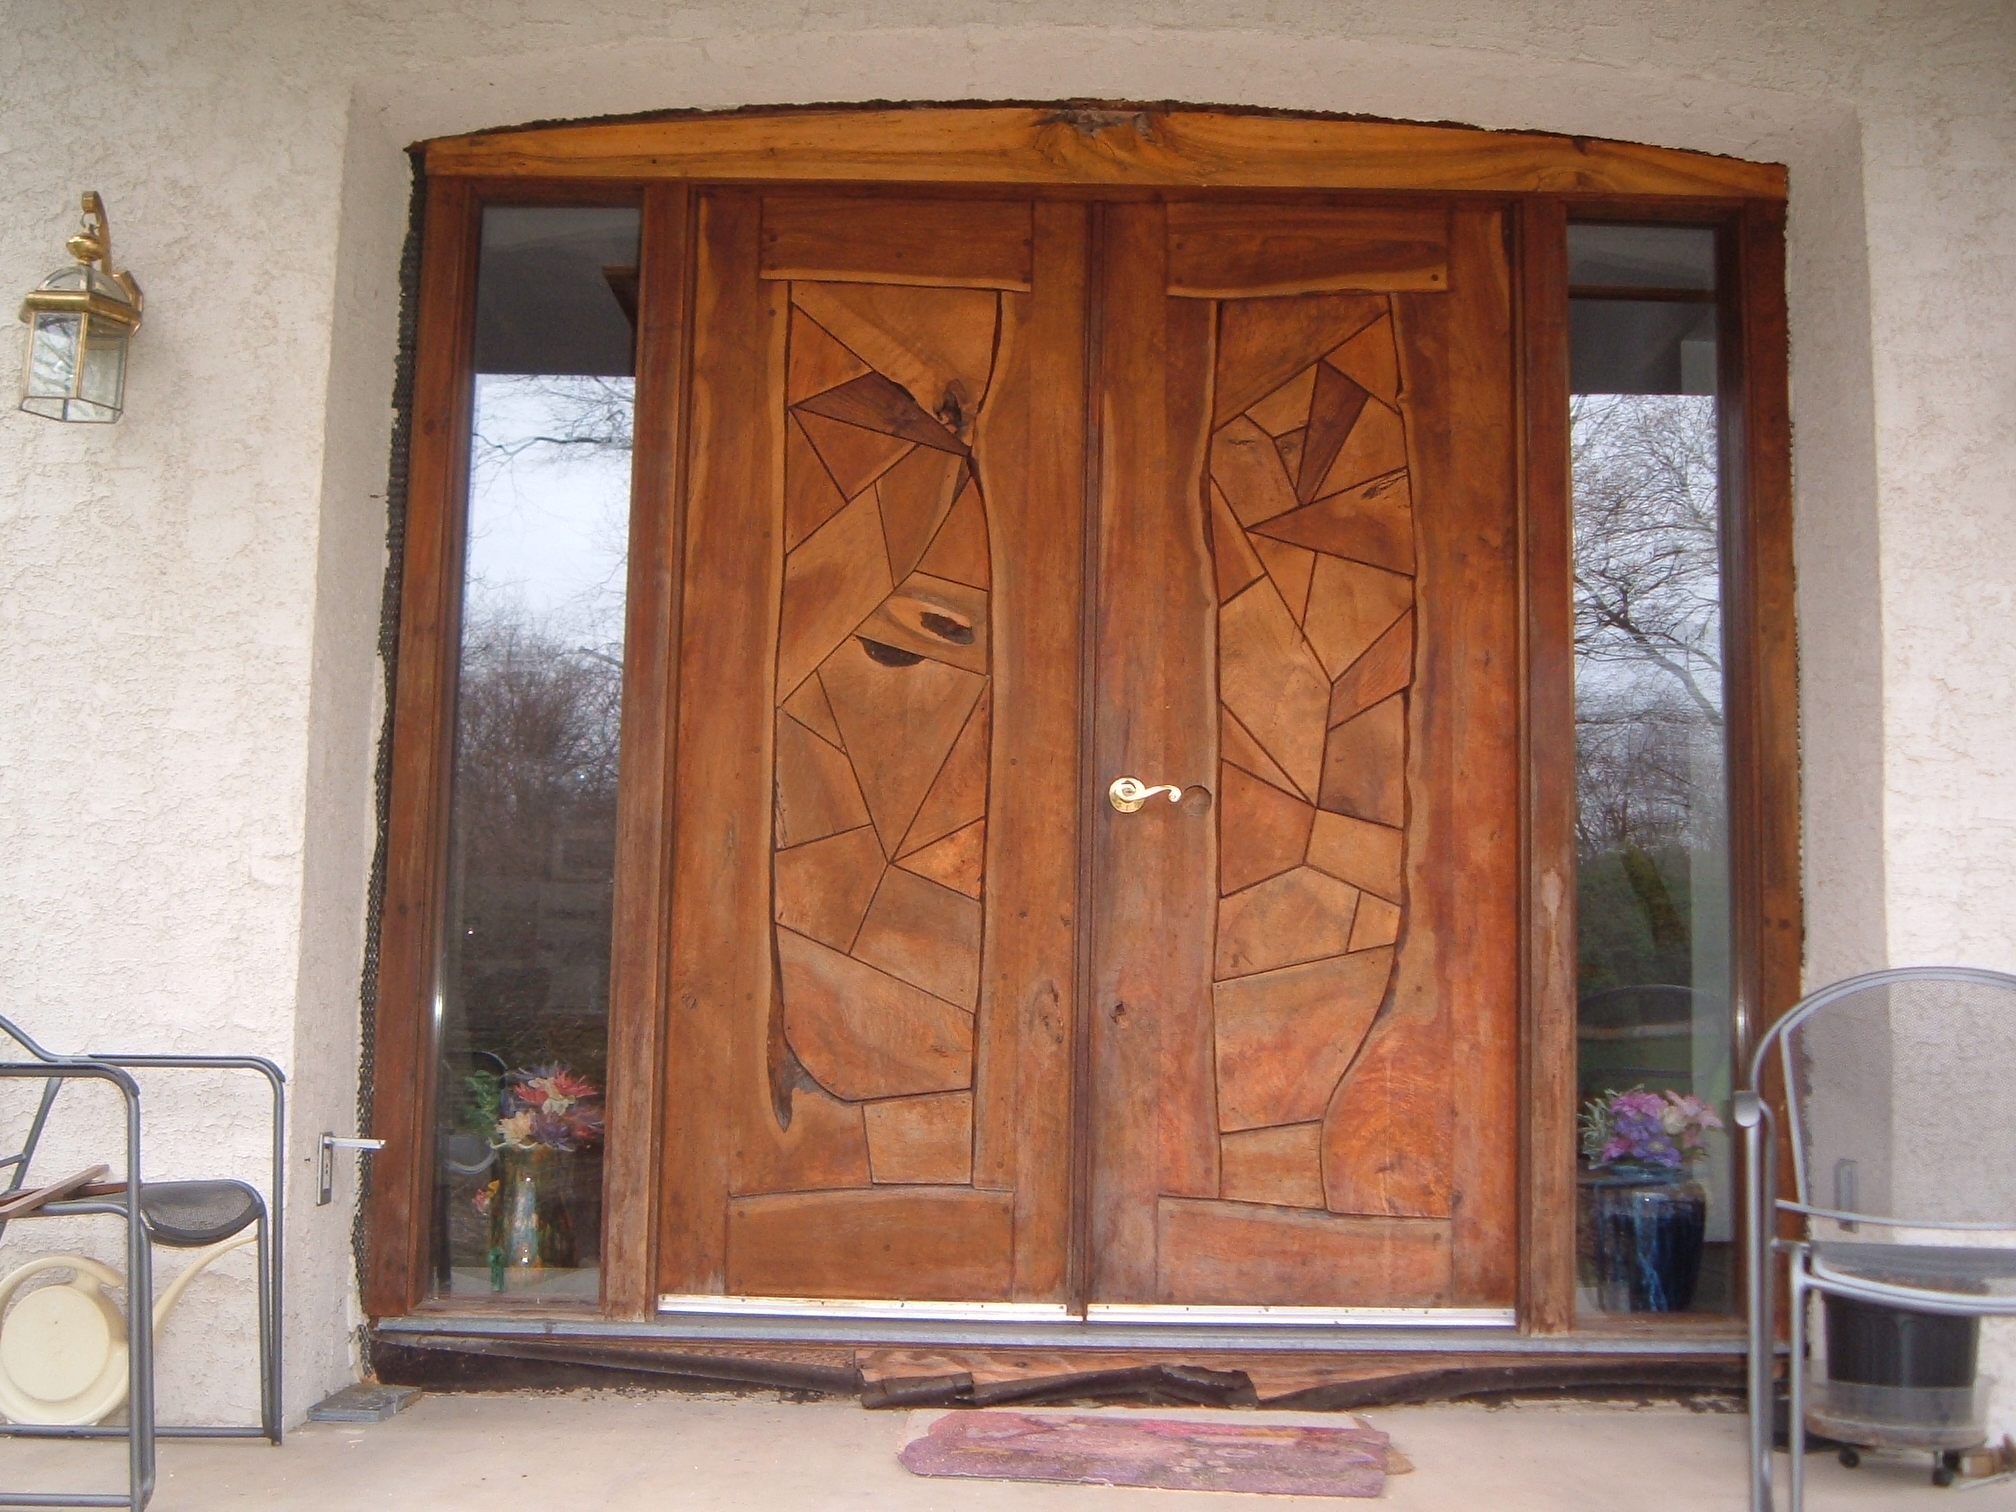 File:Wooden Door.JPG - Wikimedia Commons